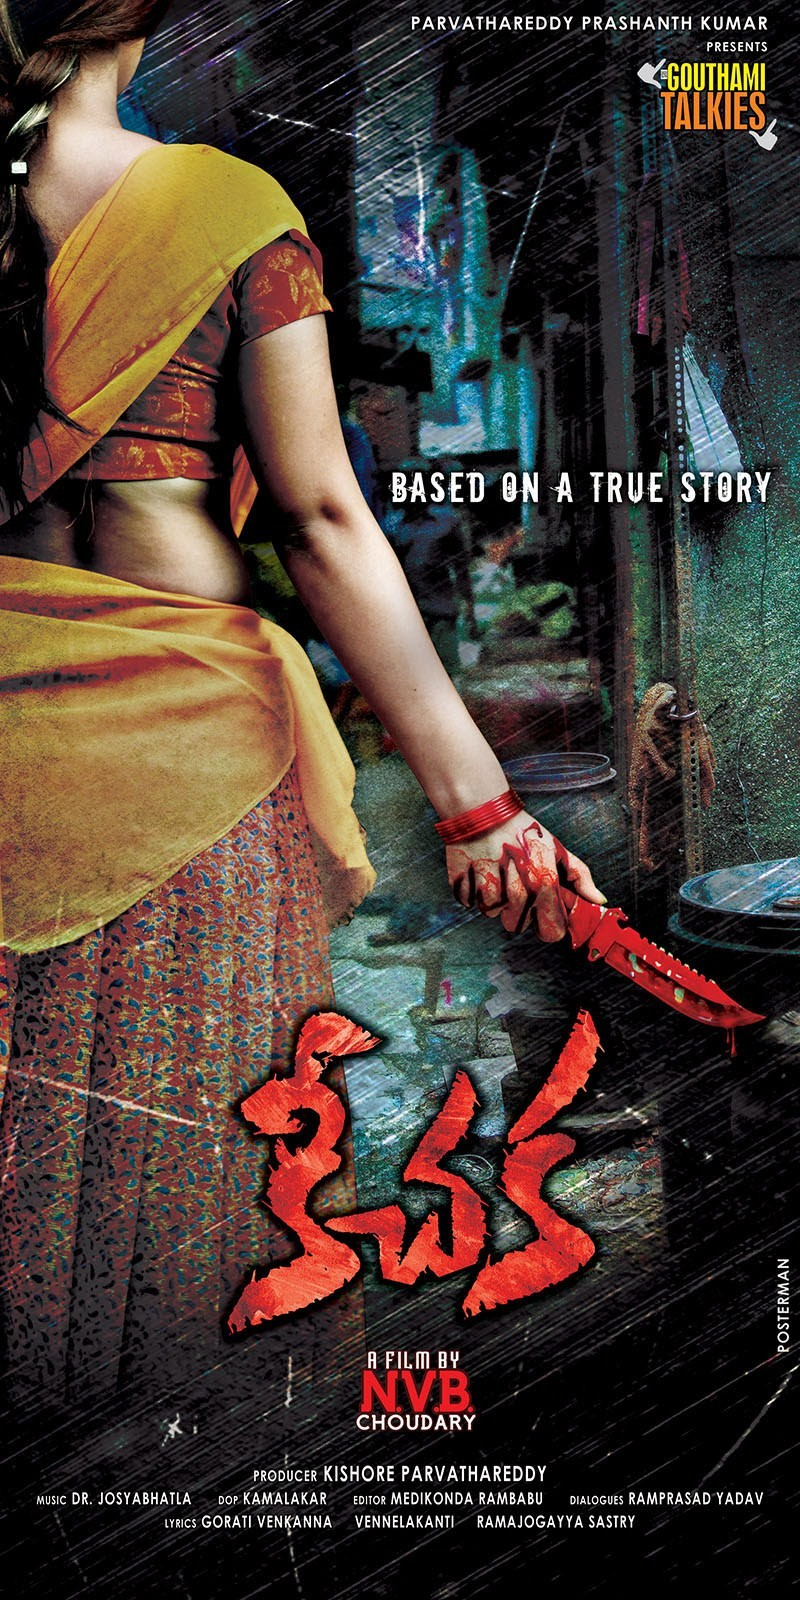 Kichaka,telugu movie Kichaka,Kichaka first look,Kichaka movie stills,Kichaka movie pics,telugu movie pics,telugu movie stills